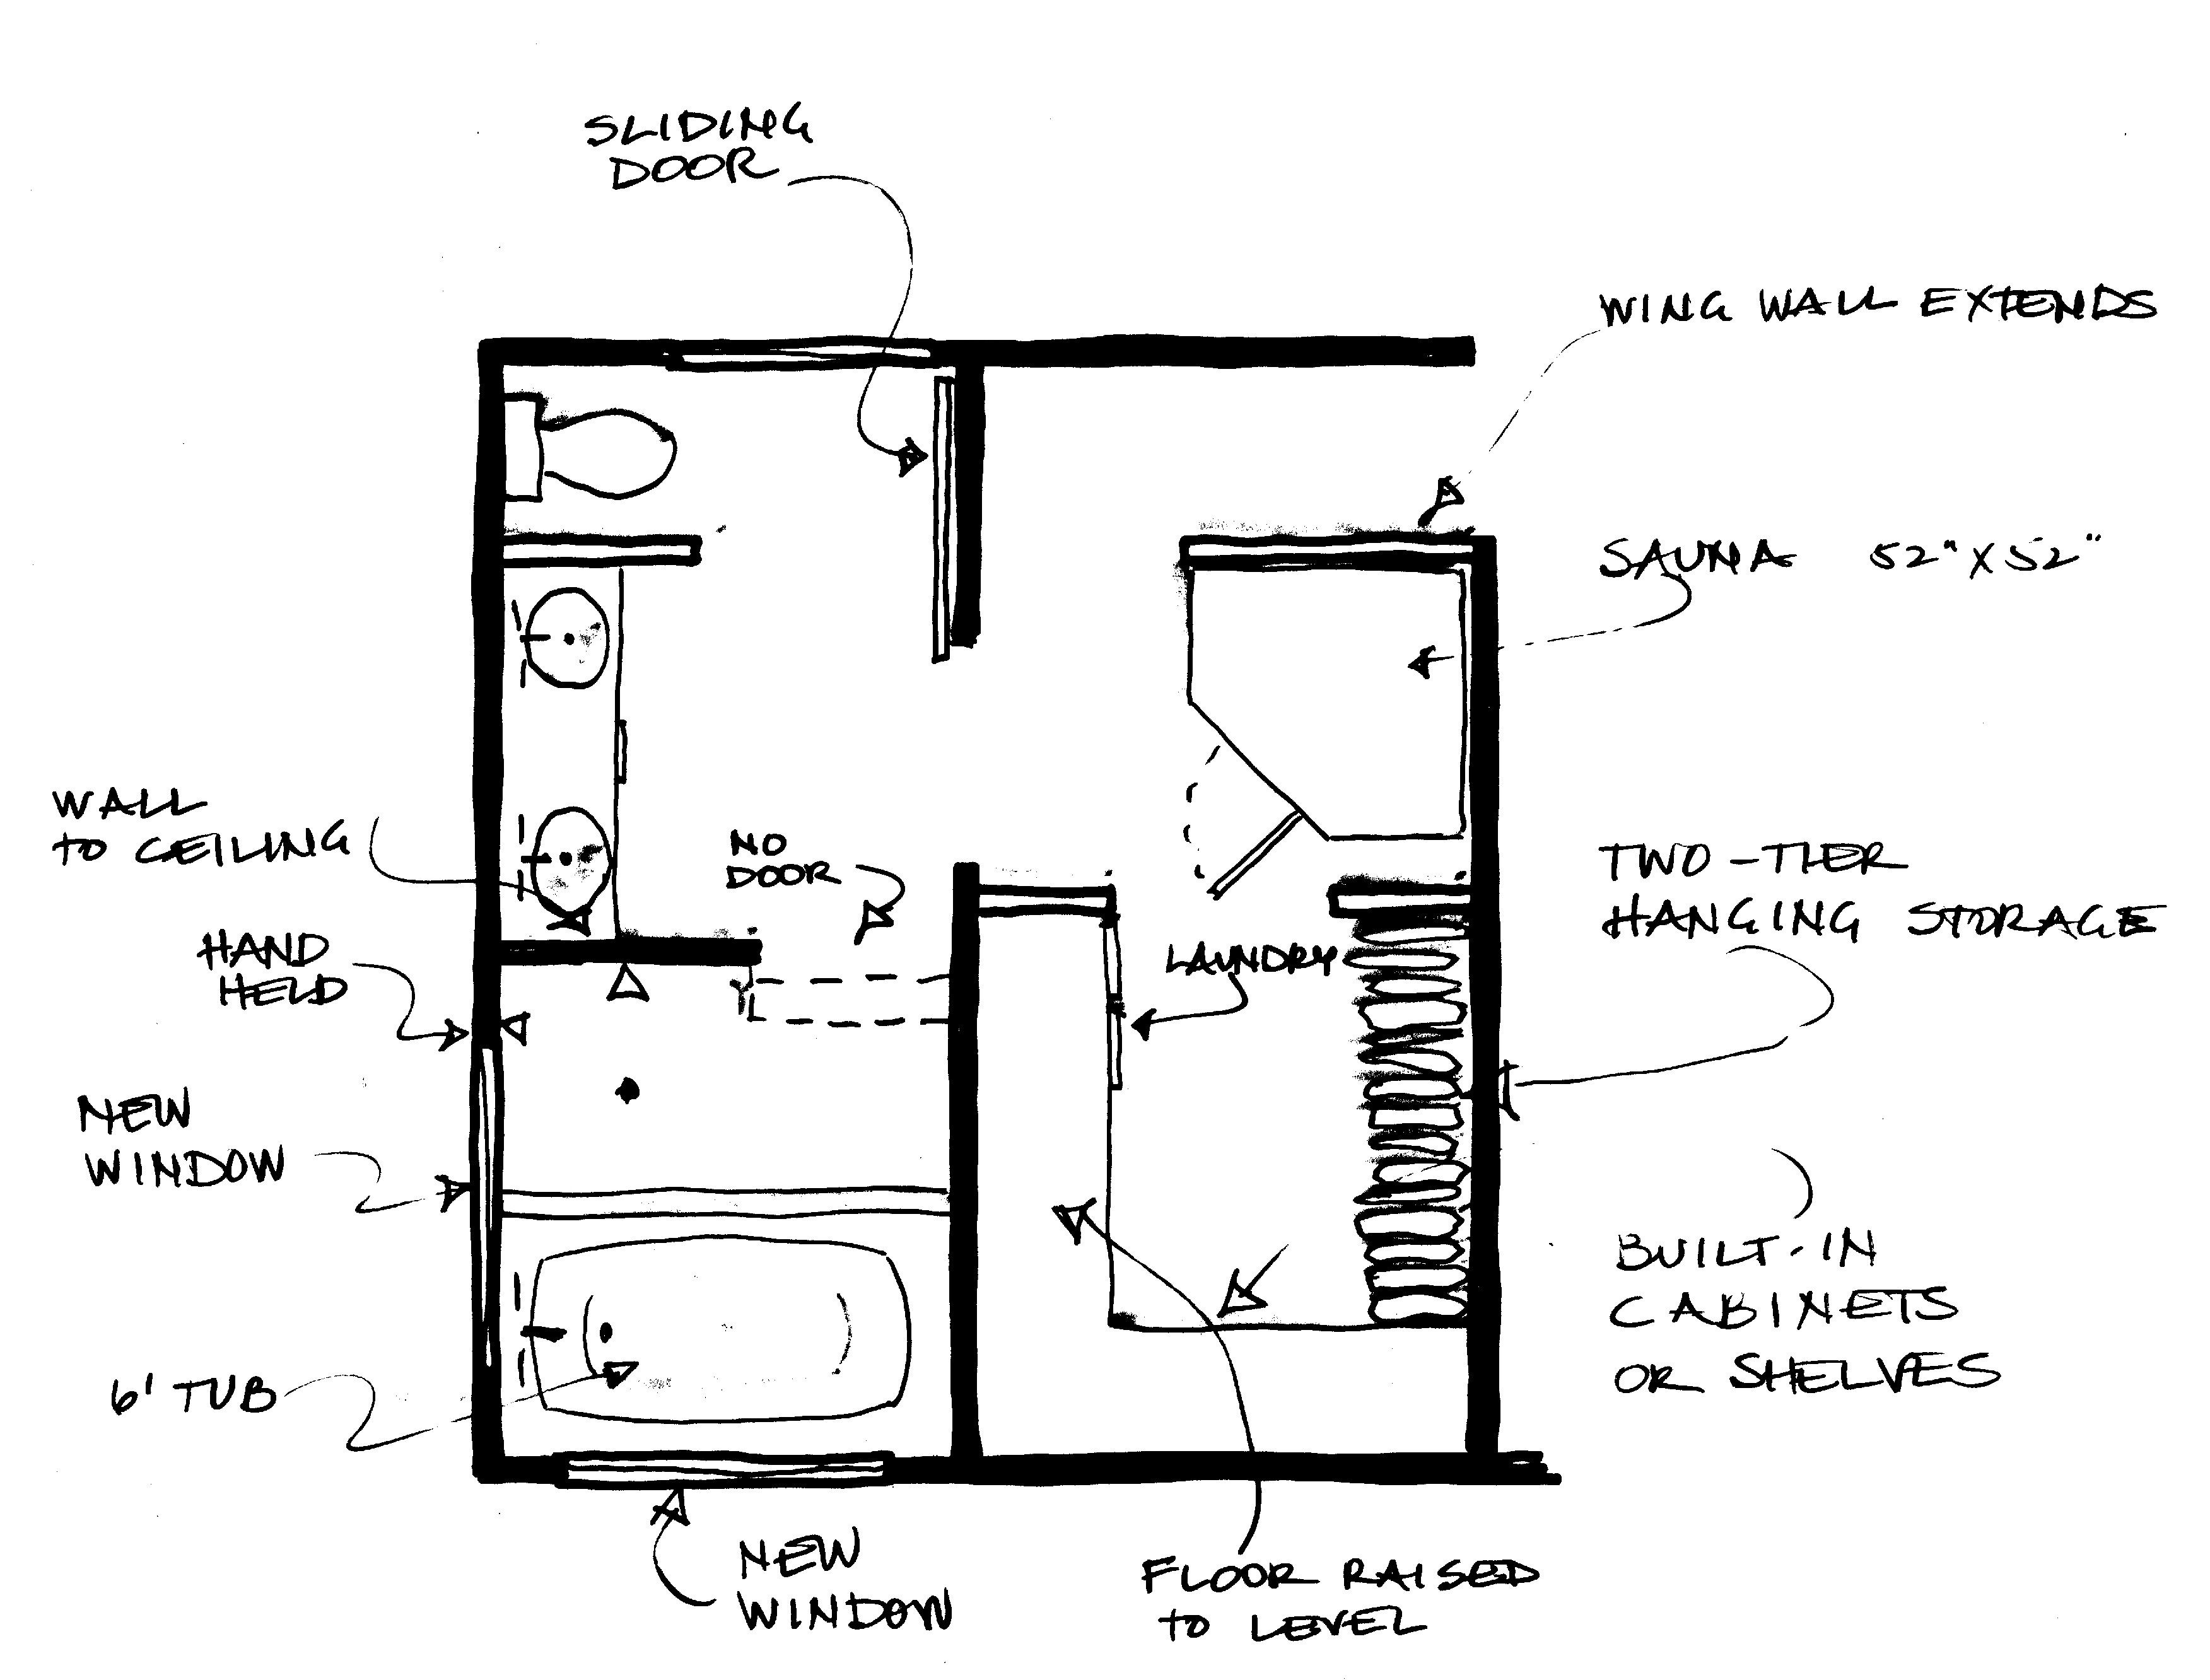 Master Bathroom Plans With Sauna Bath With Sauna Copy Bathroom Floor Plans Master Bathroom Plans Bathroom Plans